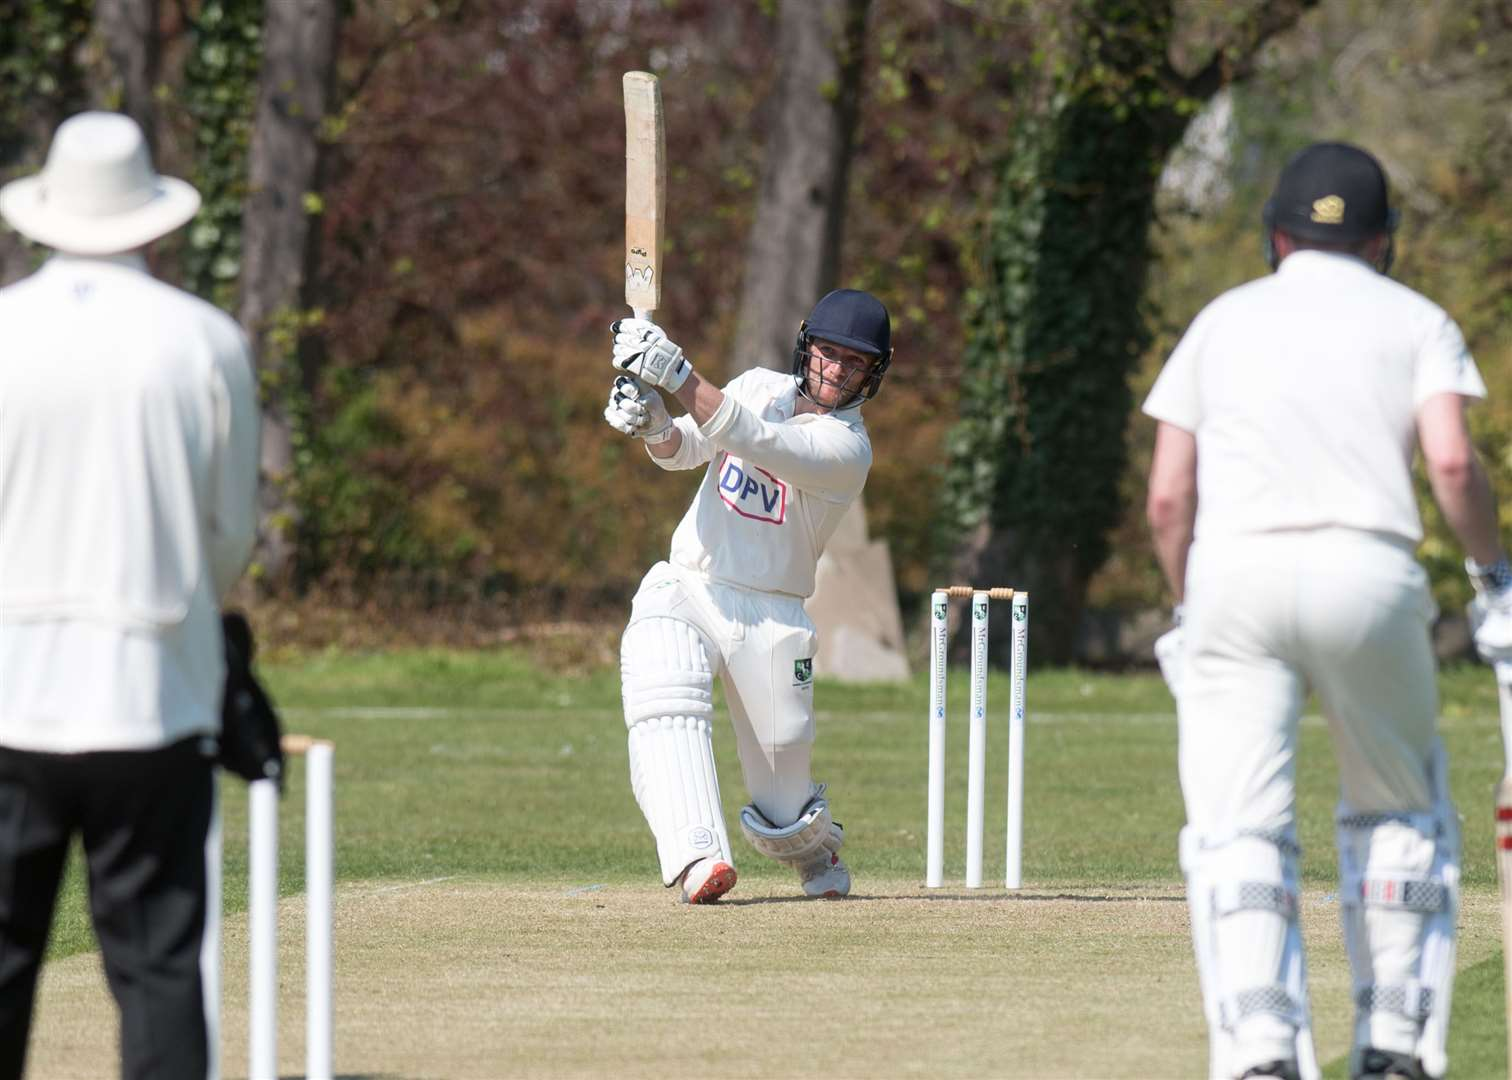 CRICKET: Burwell & Exning v Vauxhall Mallards Sam Rippington batting for B&E Picture by Mark Westley. (8955531)